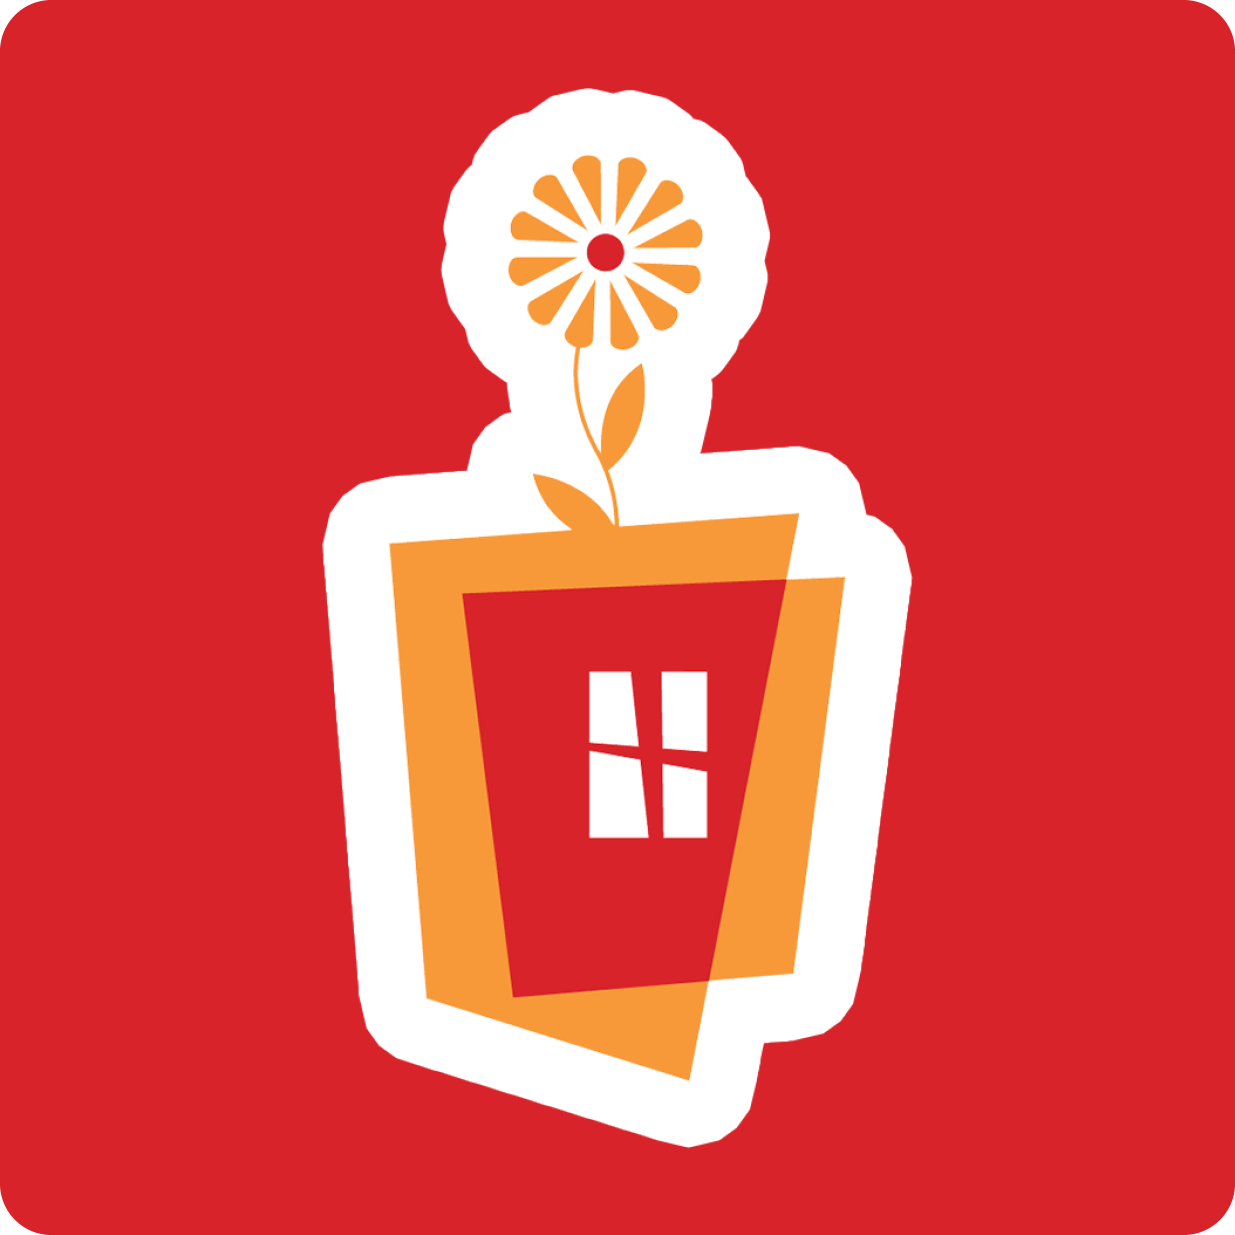 bloom_room_app_icon_1024x1024.png